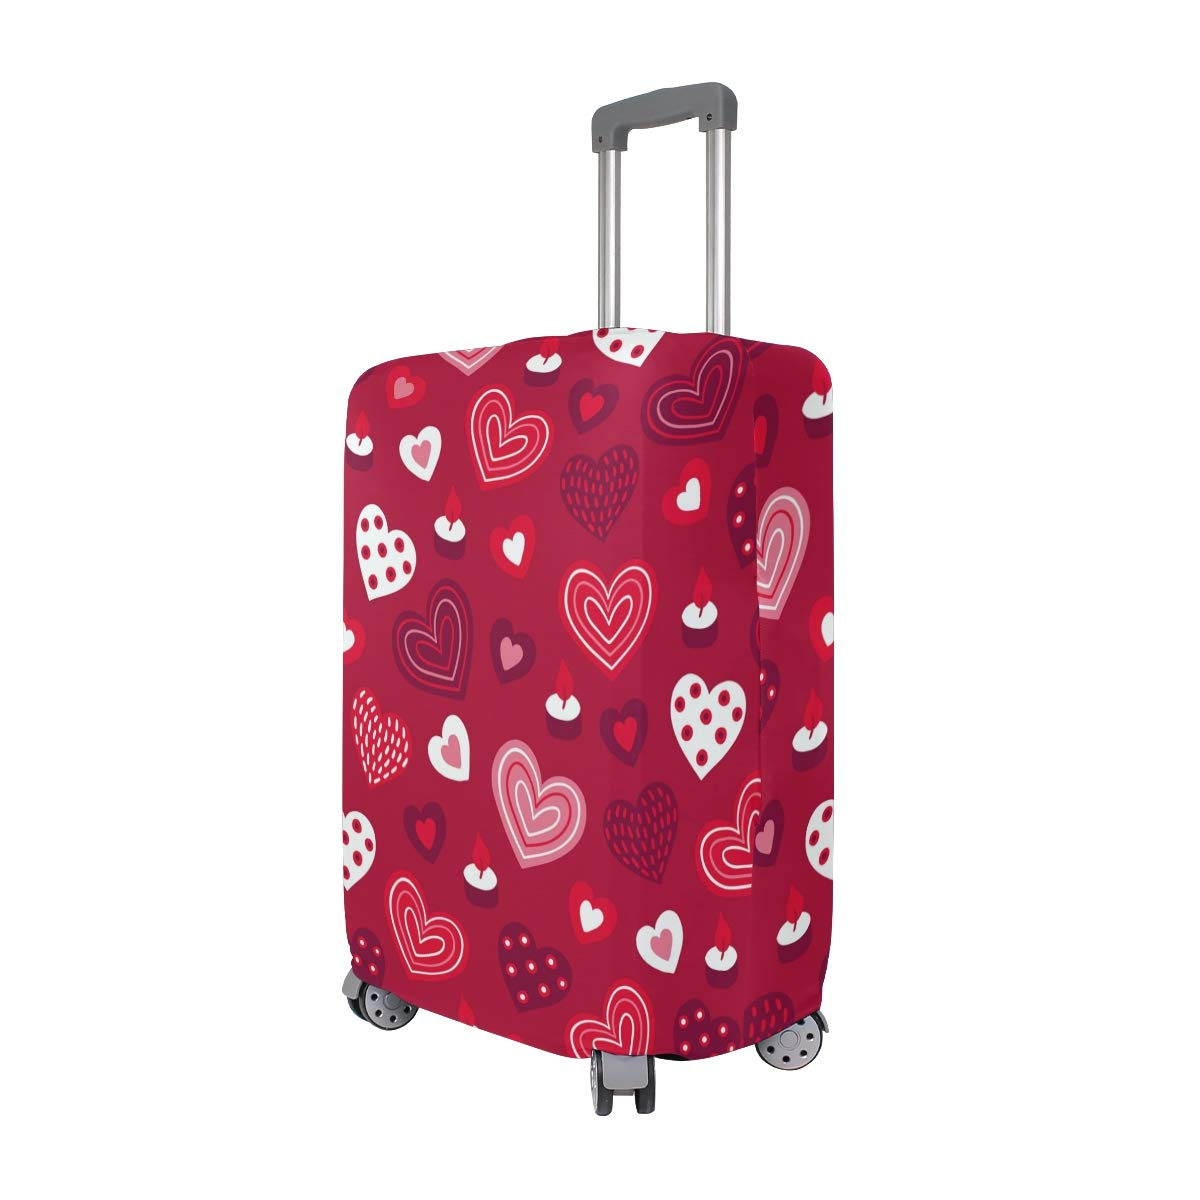 Baggage Covers Pink Love Hearts Pattern Red Background Washable Protective Case